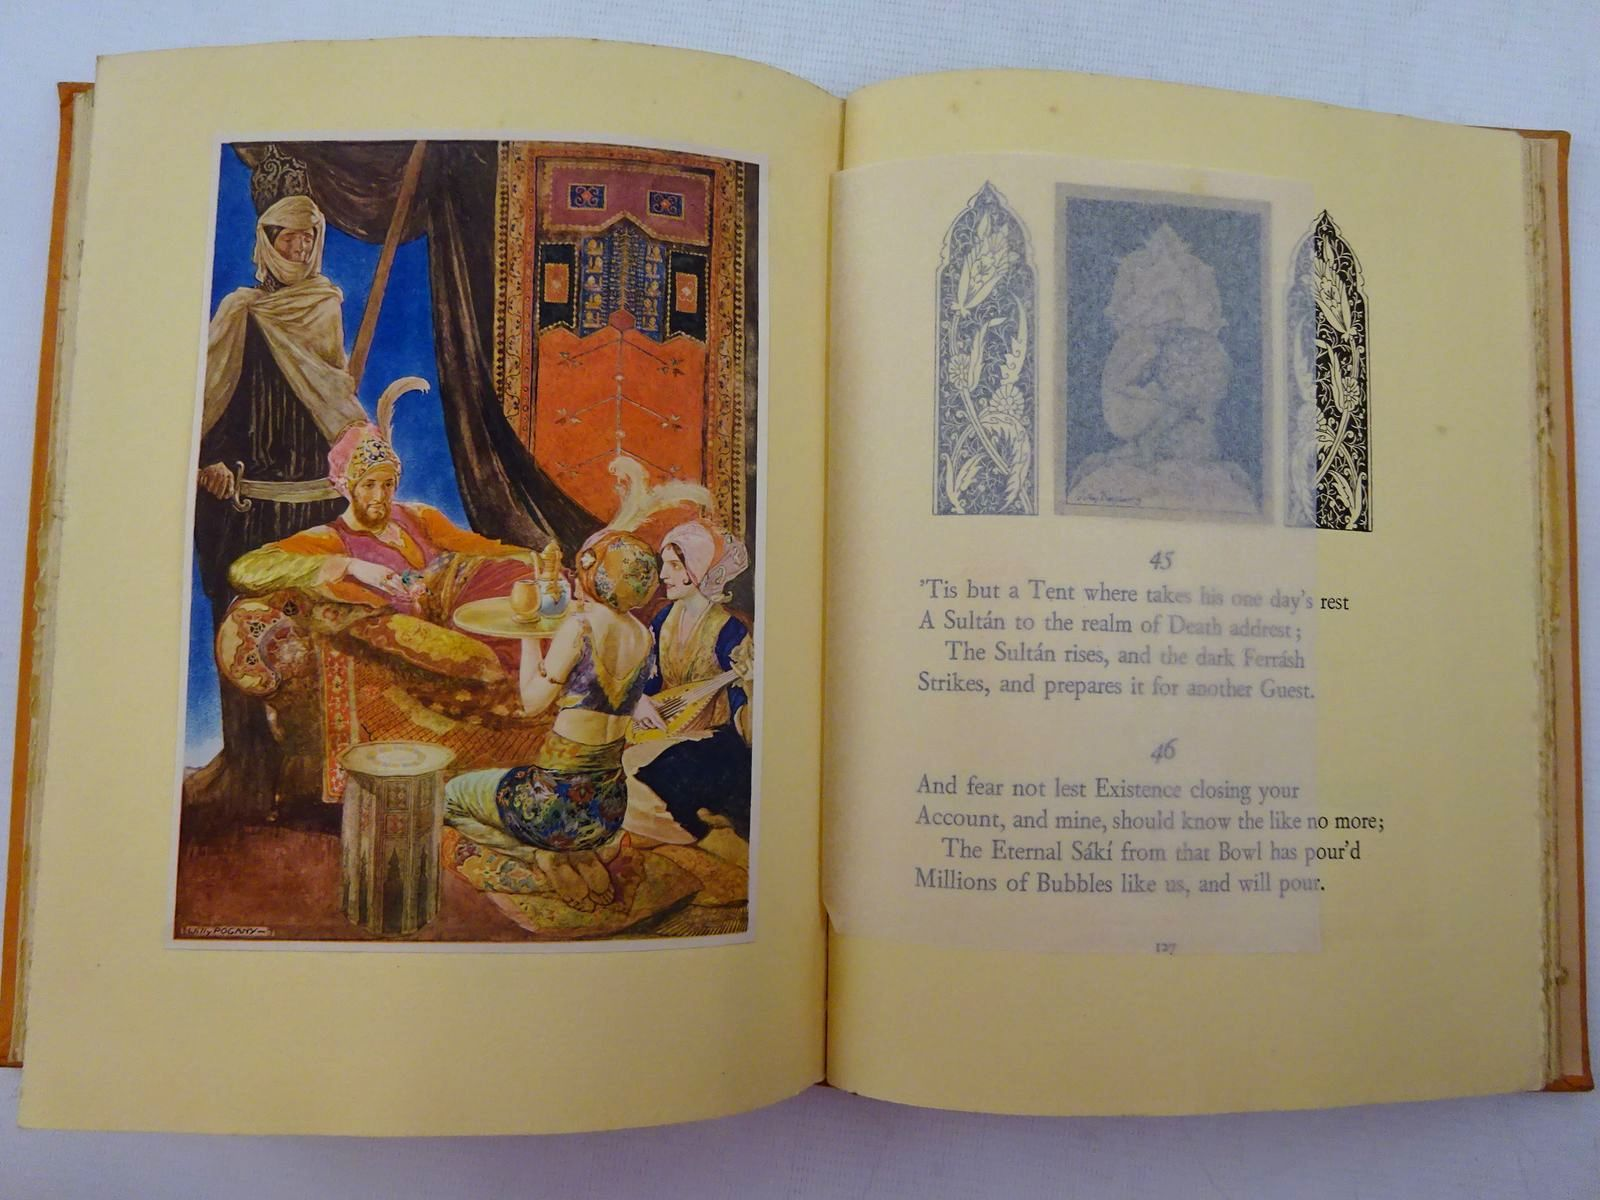 Photo of RUBAIYAT OF OMAR KHAYYAM written by Fitzgerald, Edward illustrated by Pogany, Willy published by George G. Harrap & Co. Ltd. (STOCK CODE: 2129019)  for sale by Stella & Rose's Books